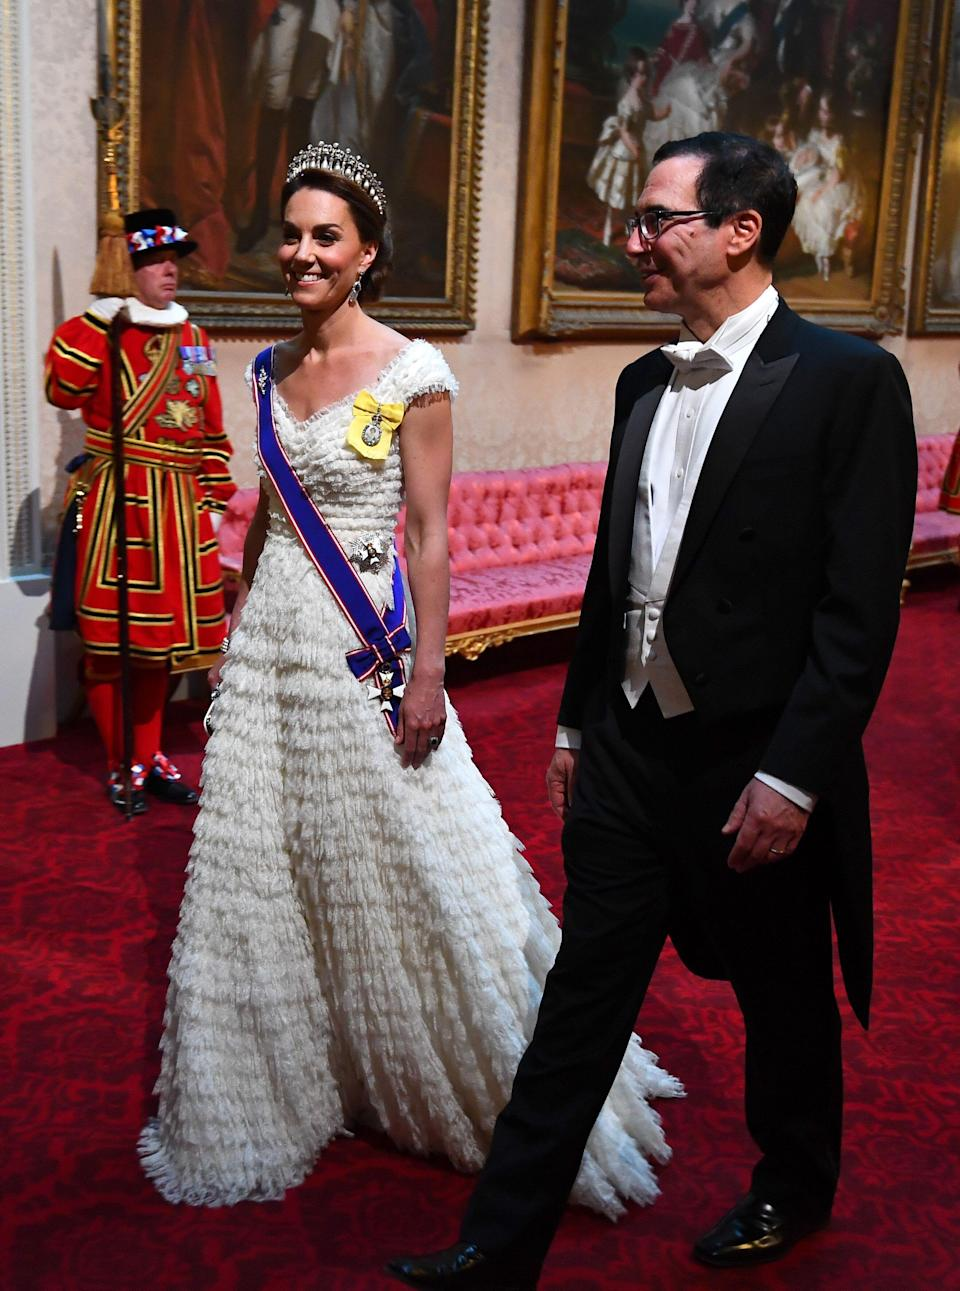 The Duchess of Cambridge and United States Secretary of the Treasury, Steven Mnuchin arrive through the East Gallery during the State Banquet at Buckingham Palace, London. [Photo: PA]